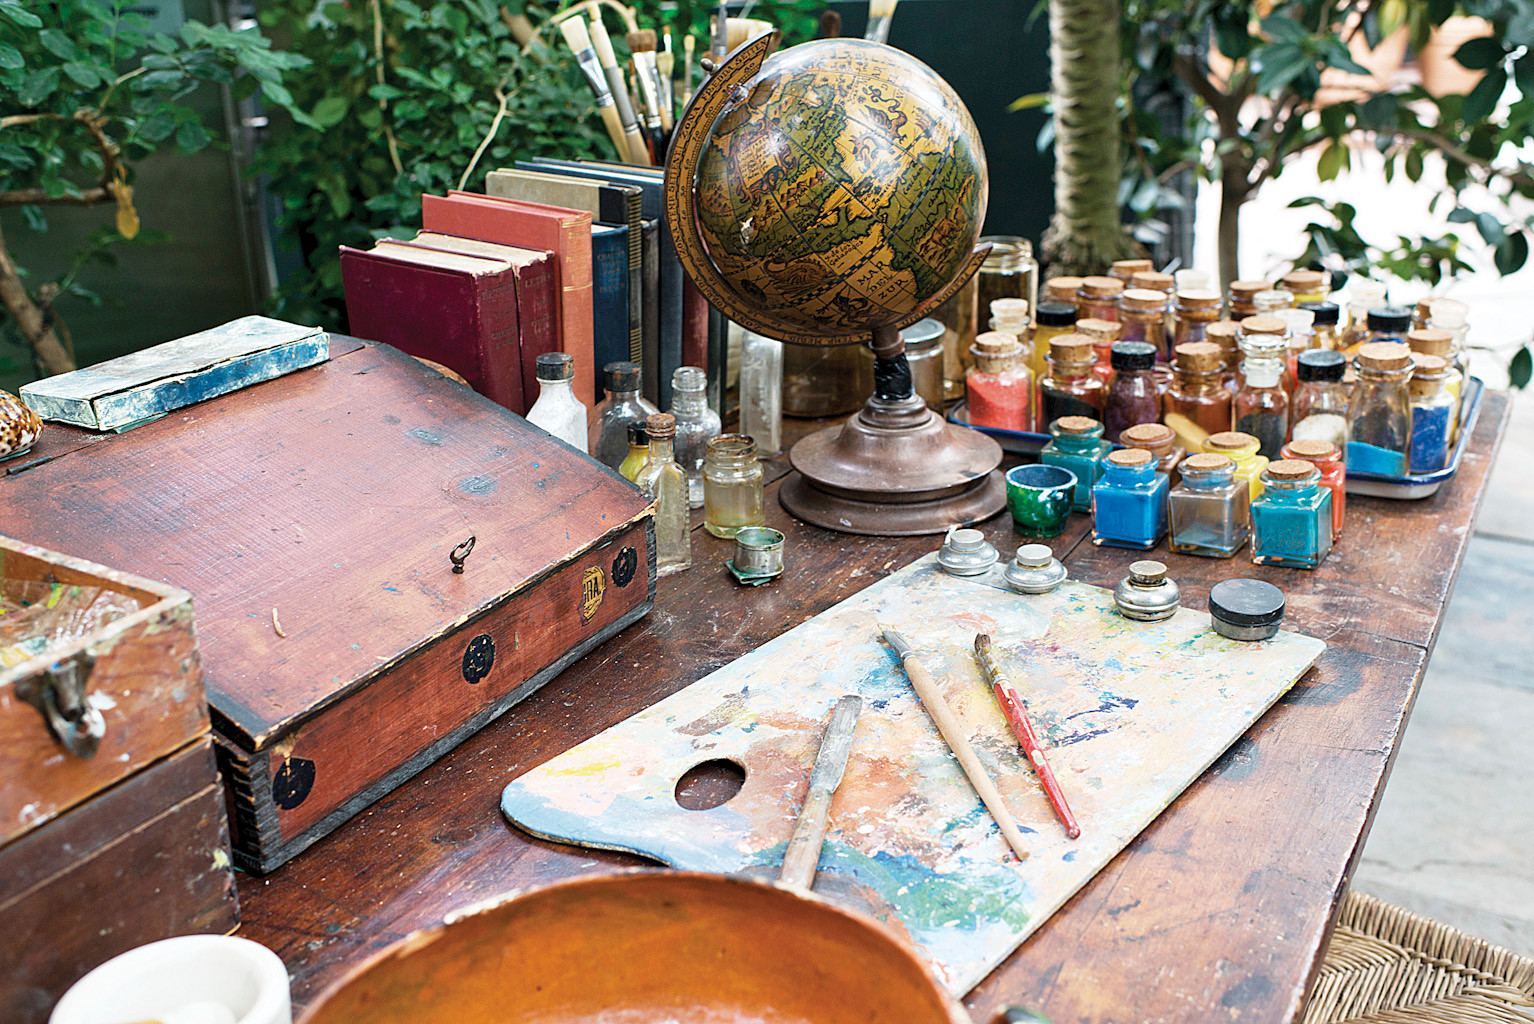 A 're-imagining' of Frida Kahlo's work desk and painting tools.